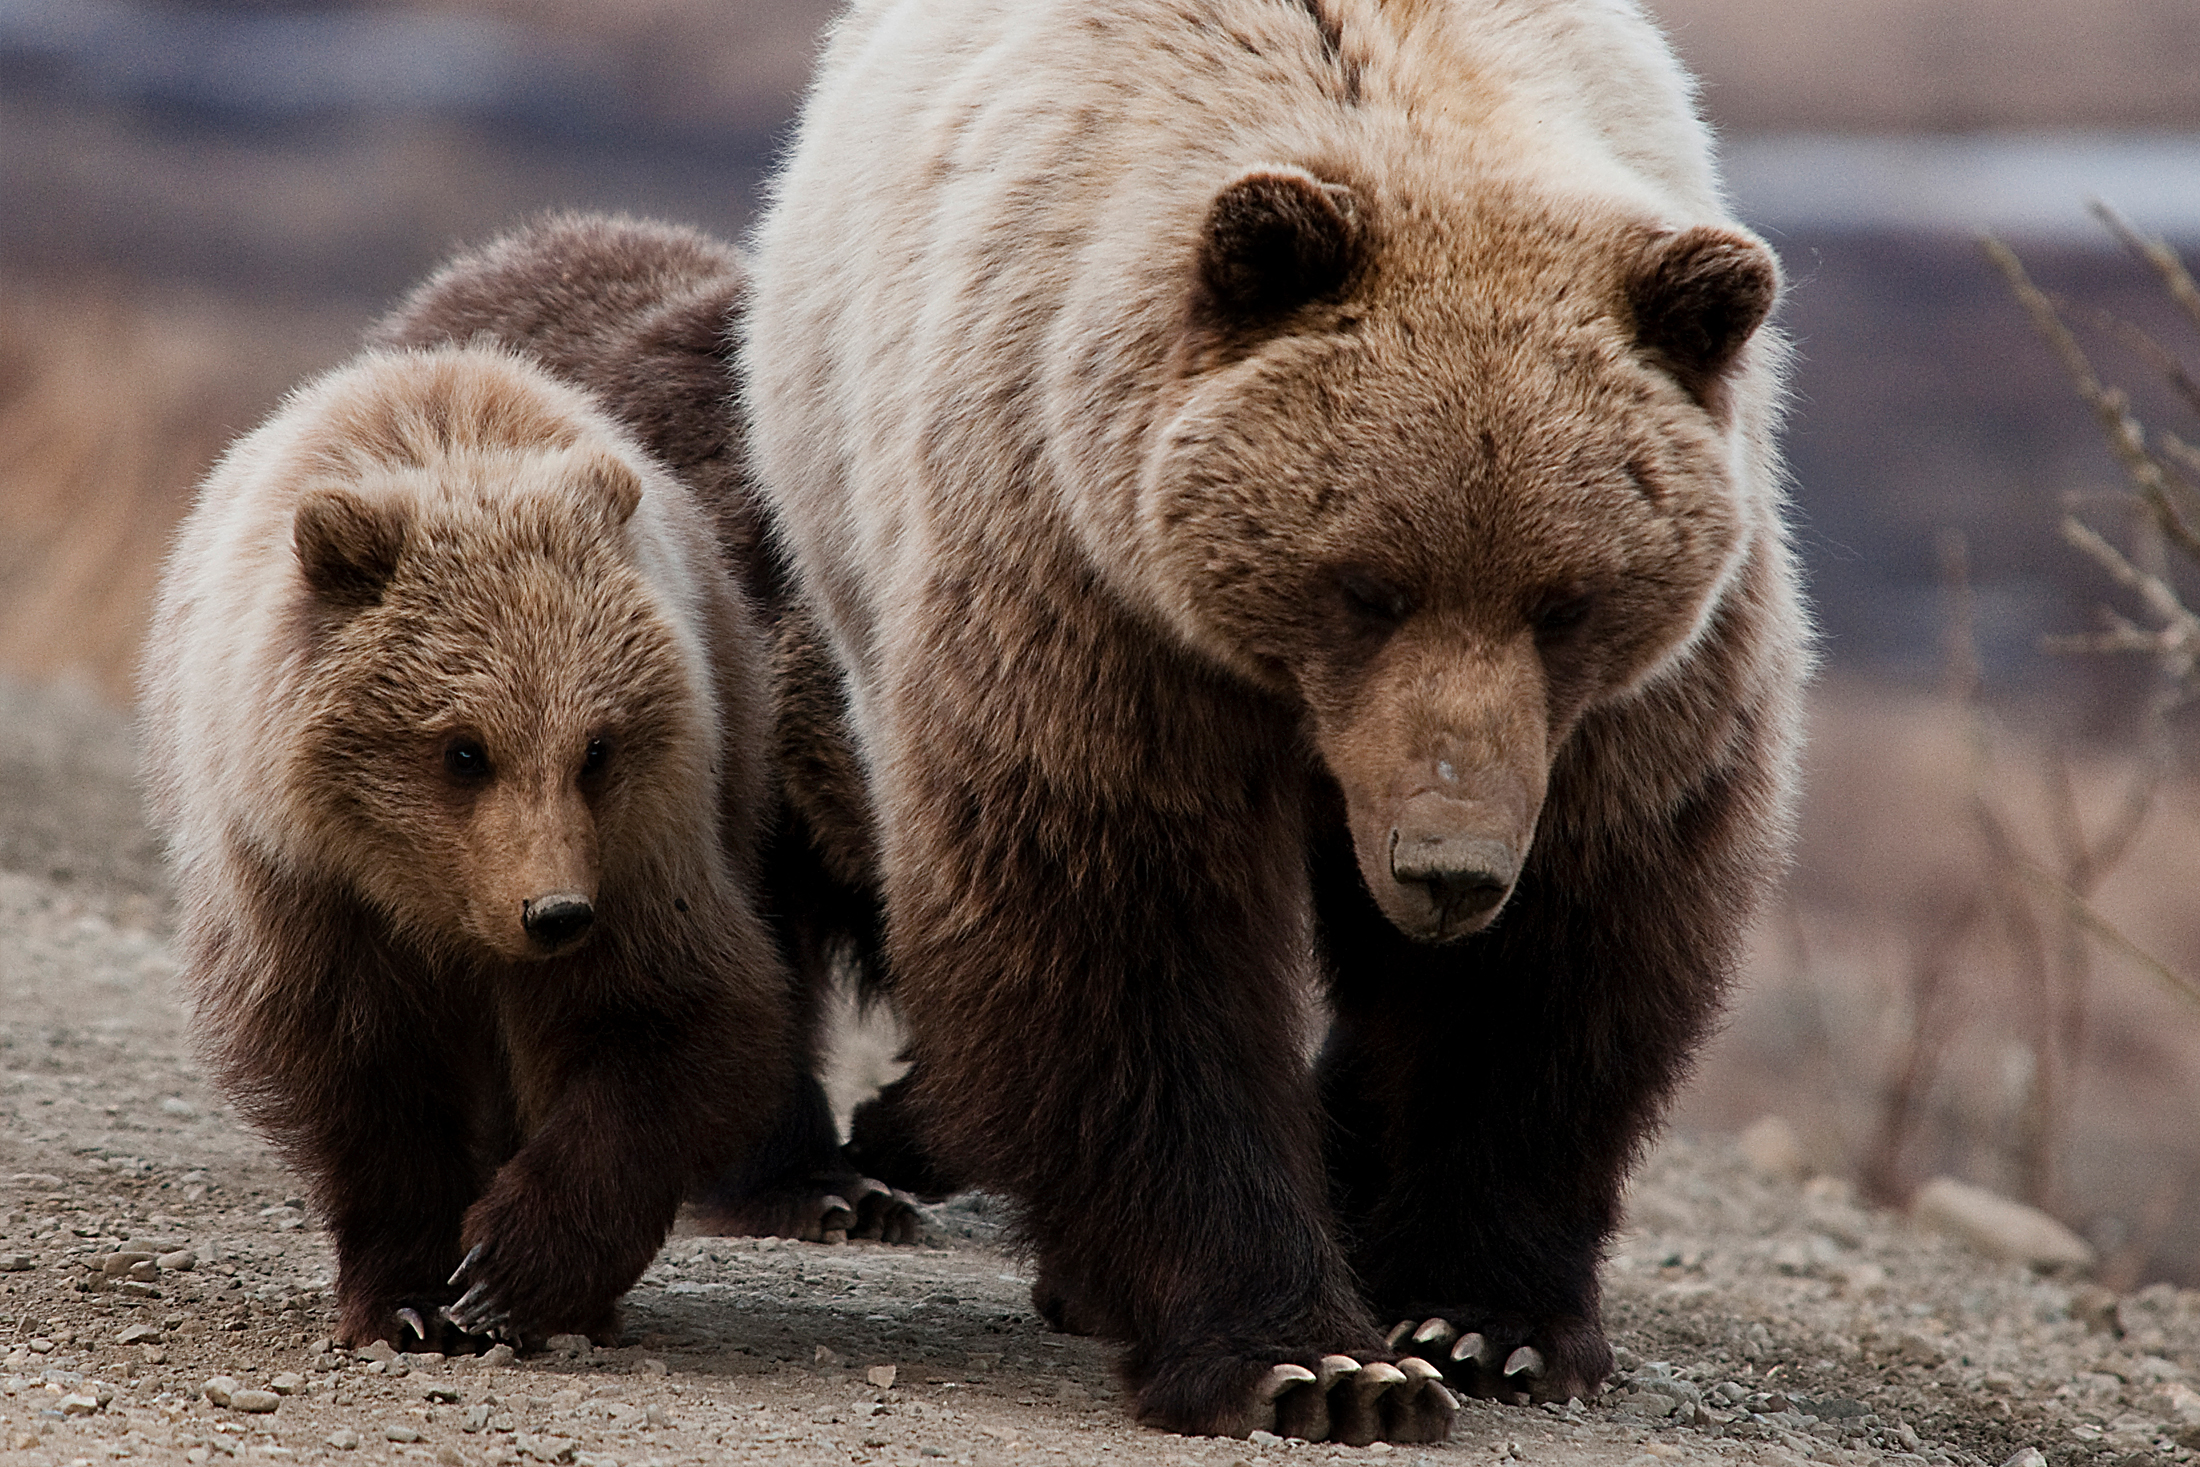 Grizzly Sow and Cubs walking close together